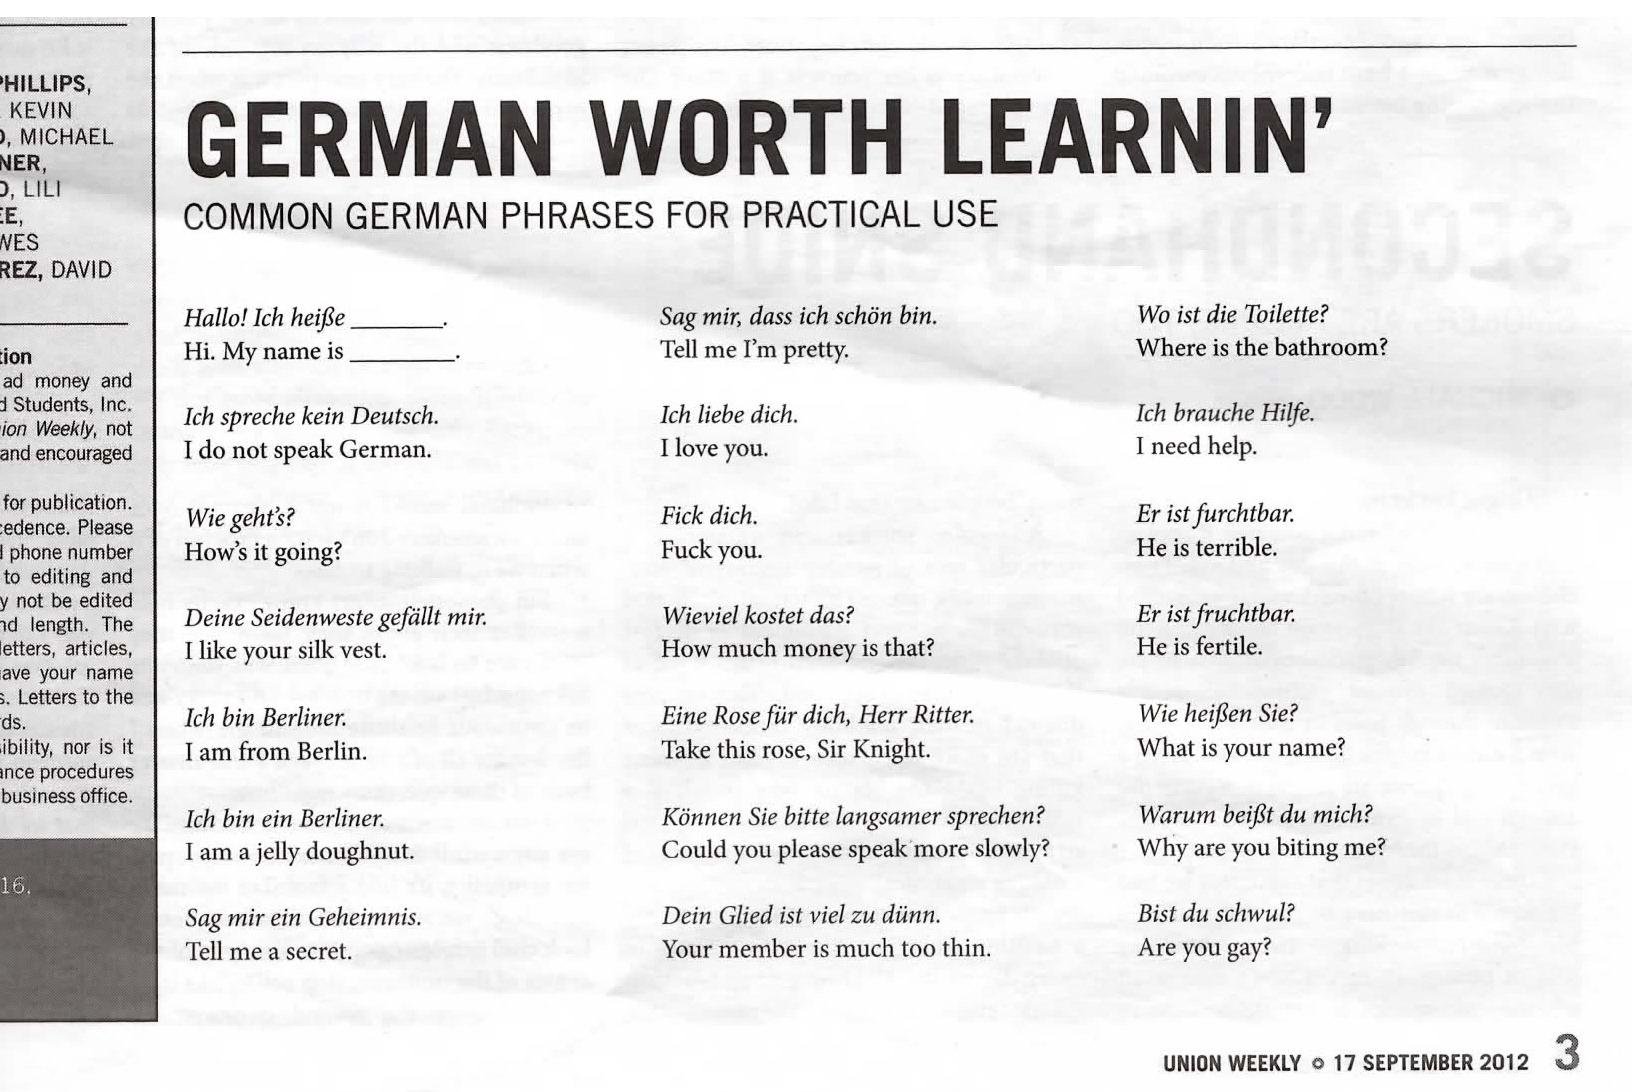 essay vocabulary german Learn german words and more german vocabulary and nouns in many categories with free german flash cards and the lingo dingo review game.